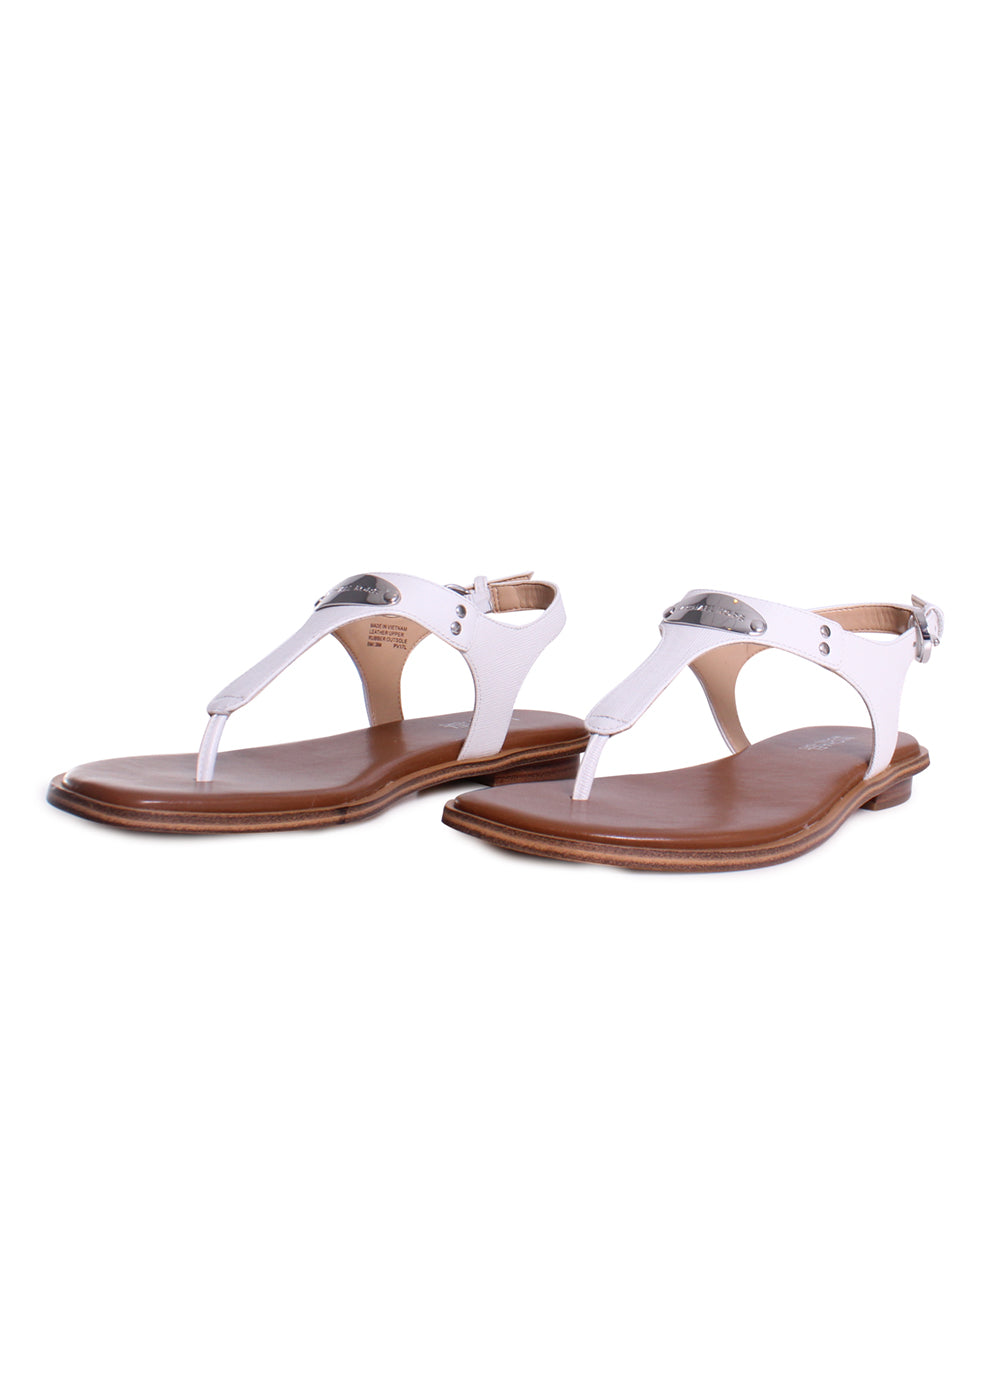 Michael Kors Plate Leather T-Strap Thong Sandal in Optic White